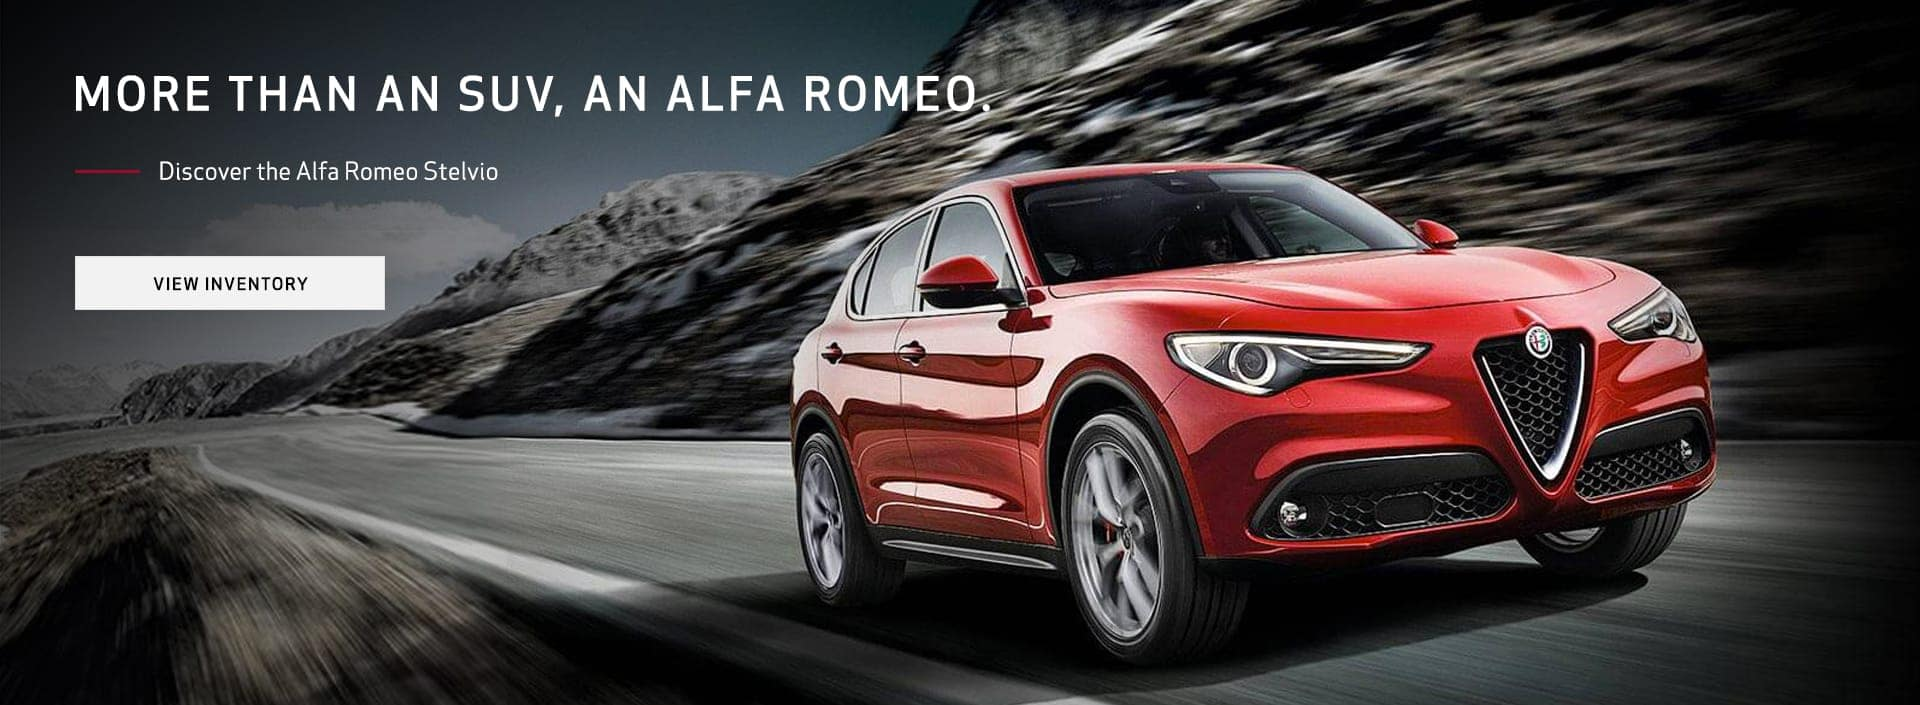 Front angled view of the Alfa Romeo Stelvio driving down a road